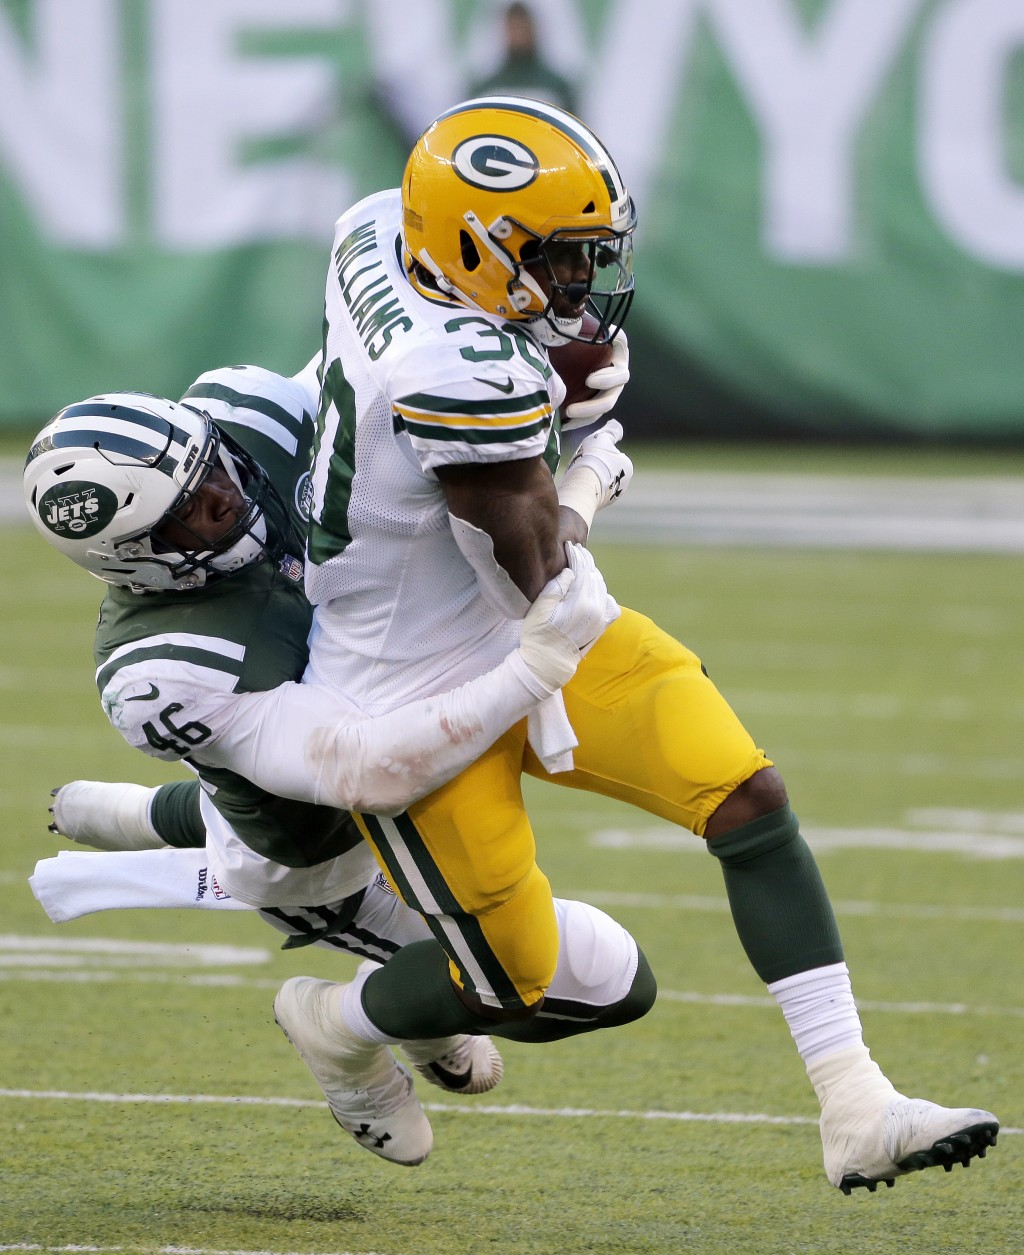 Green Bay Packers running back Jamaal Williams, right, is tackled by New York Jets linebacker Neville Hewitt during the second half of an NFL football